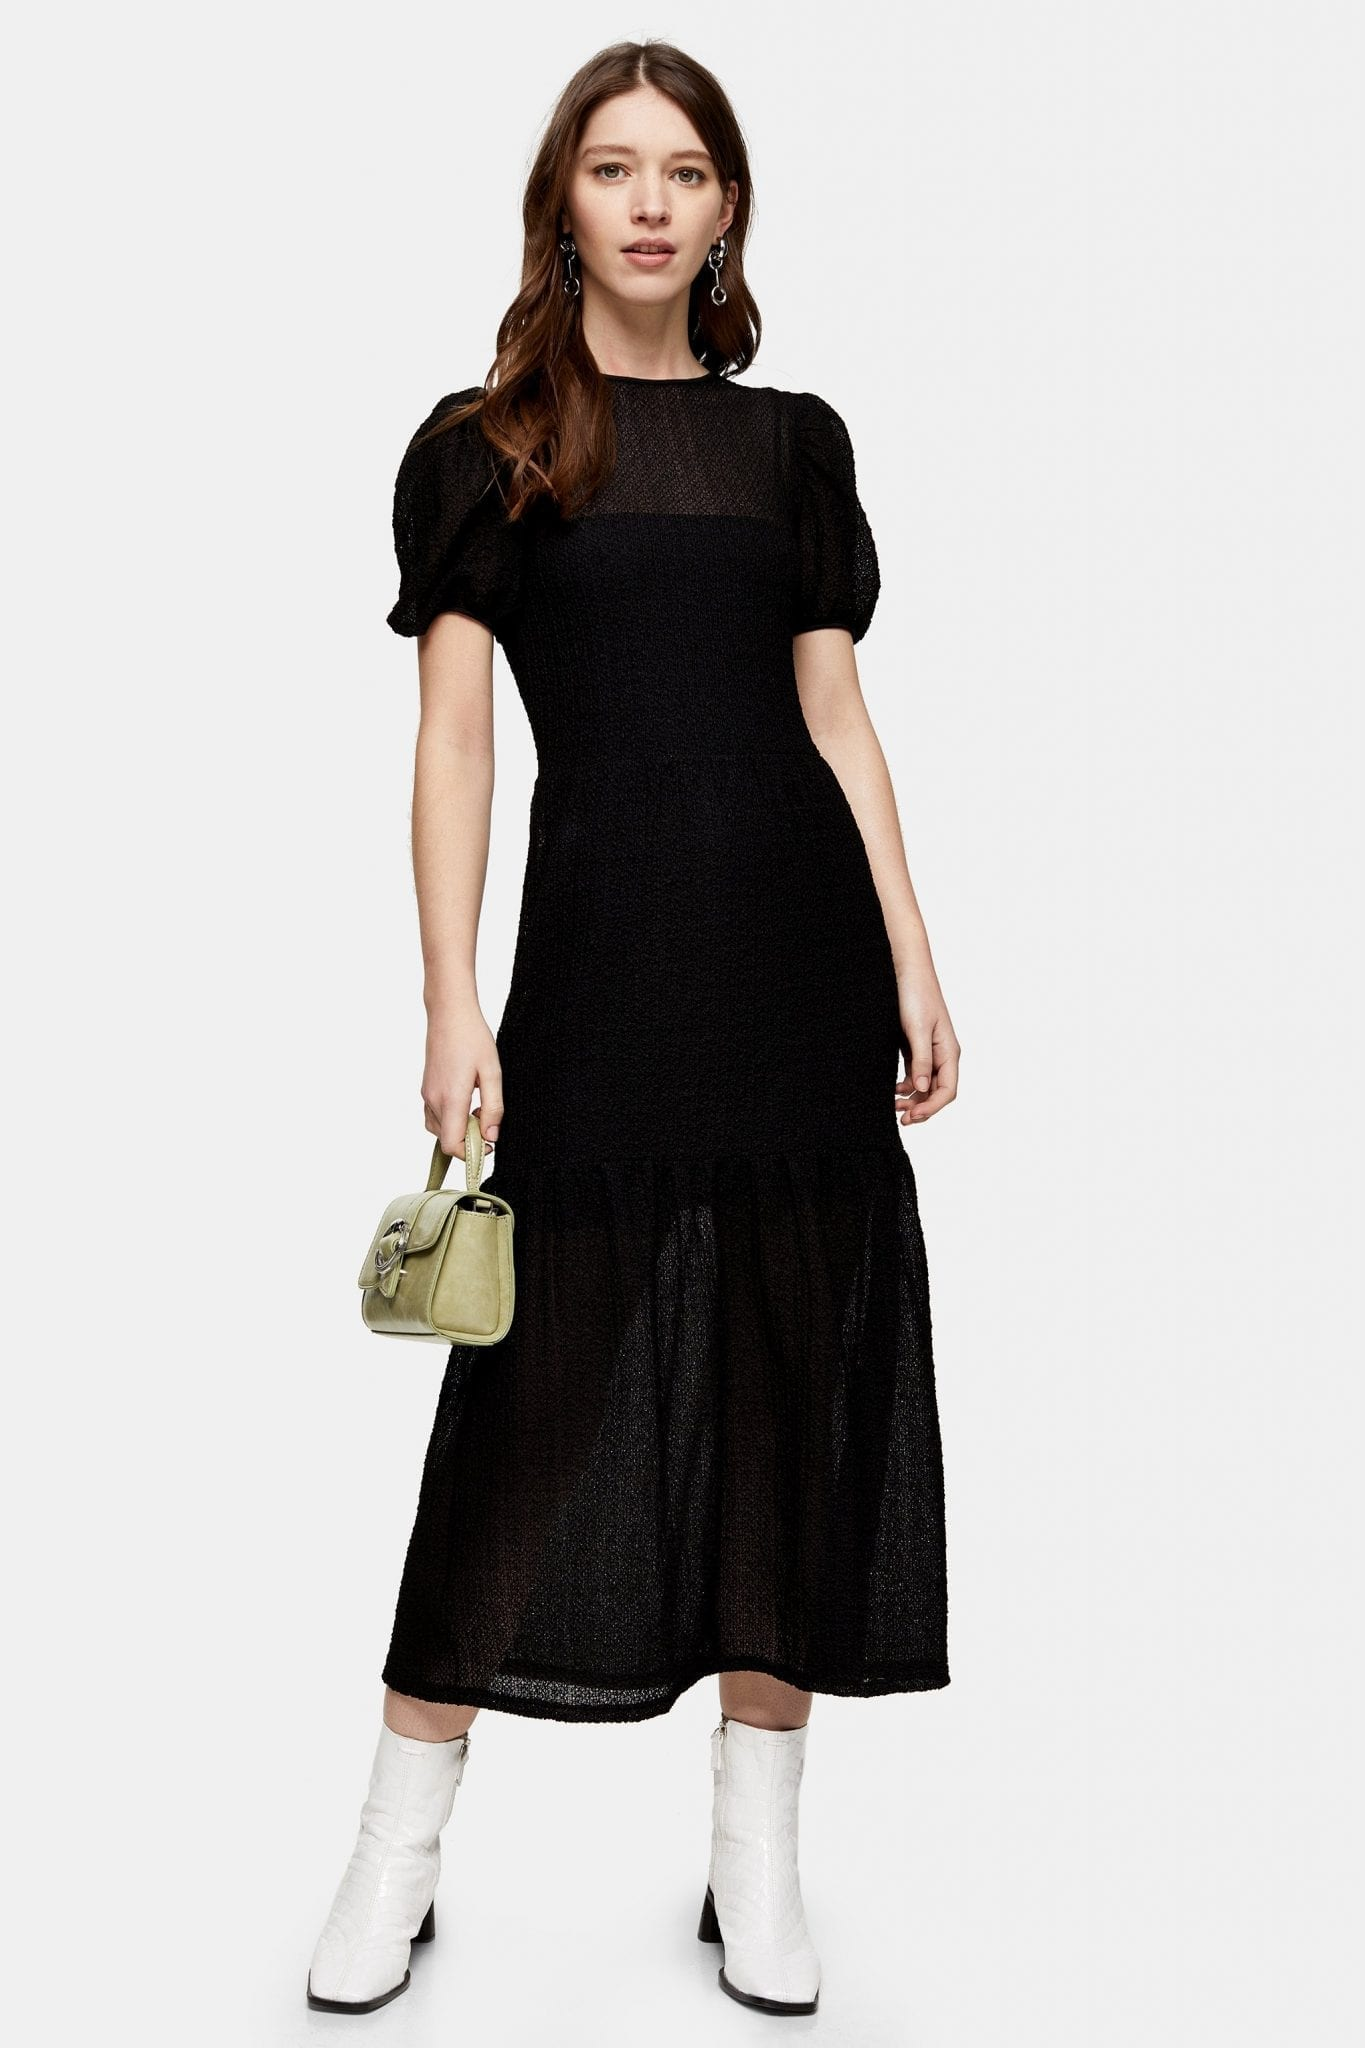 TOPSHOP Black Textured Lace Midi Dress